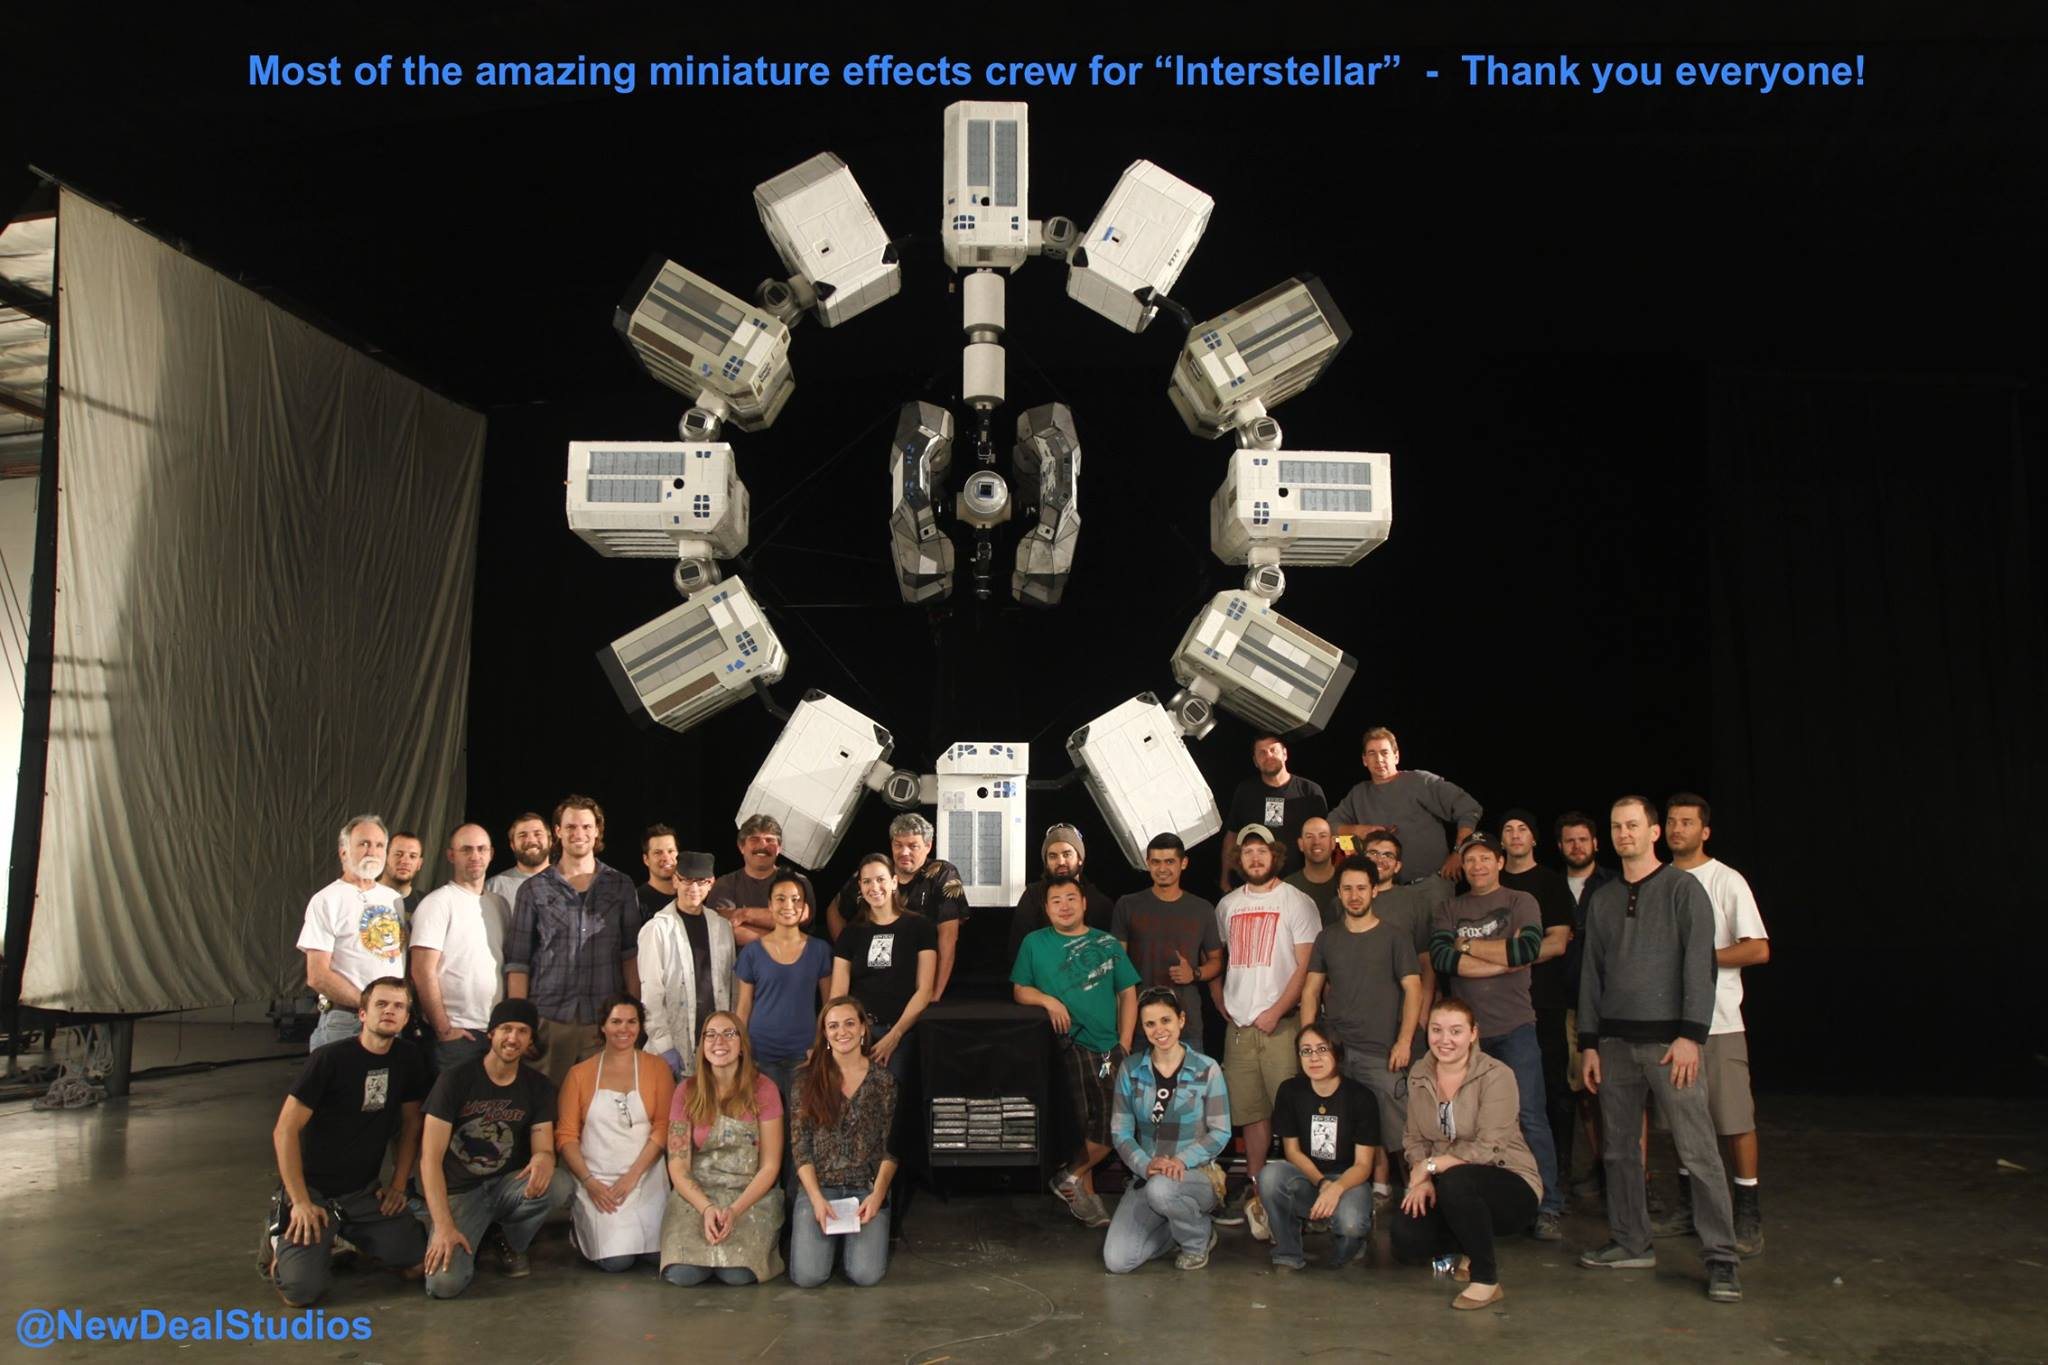 The amazing crew who contributed their creativity, heart and soul into the miniatures for INTERSTELLAR.